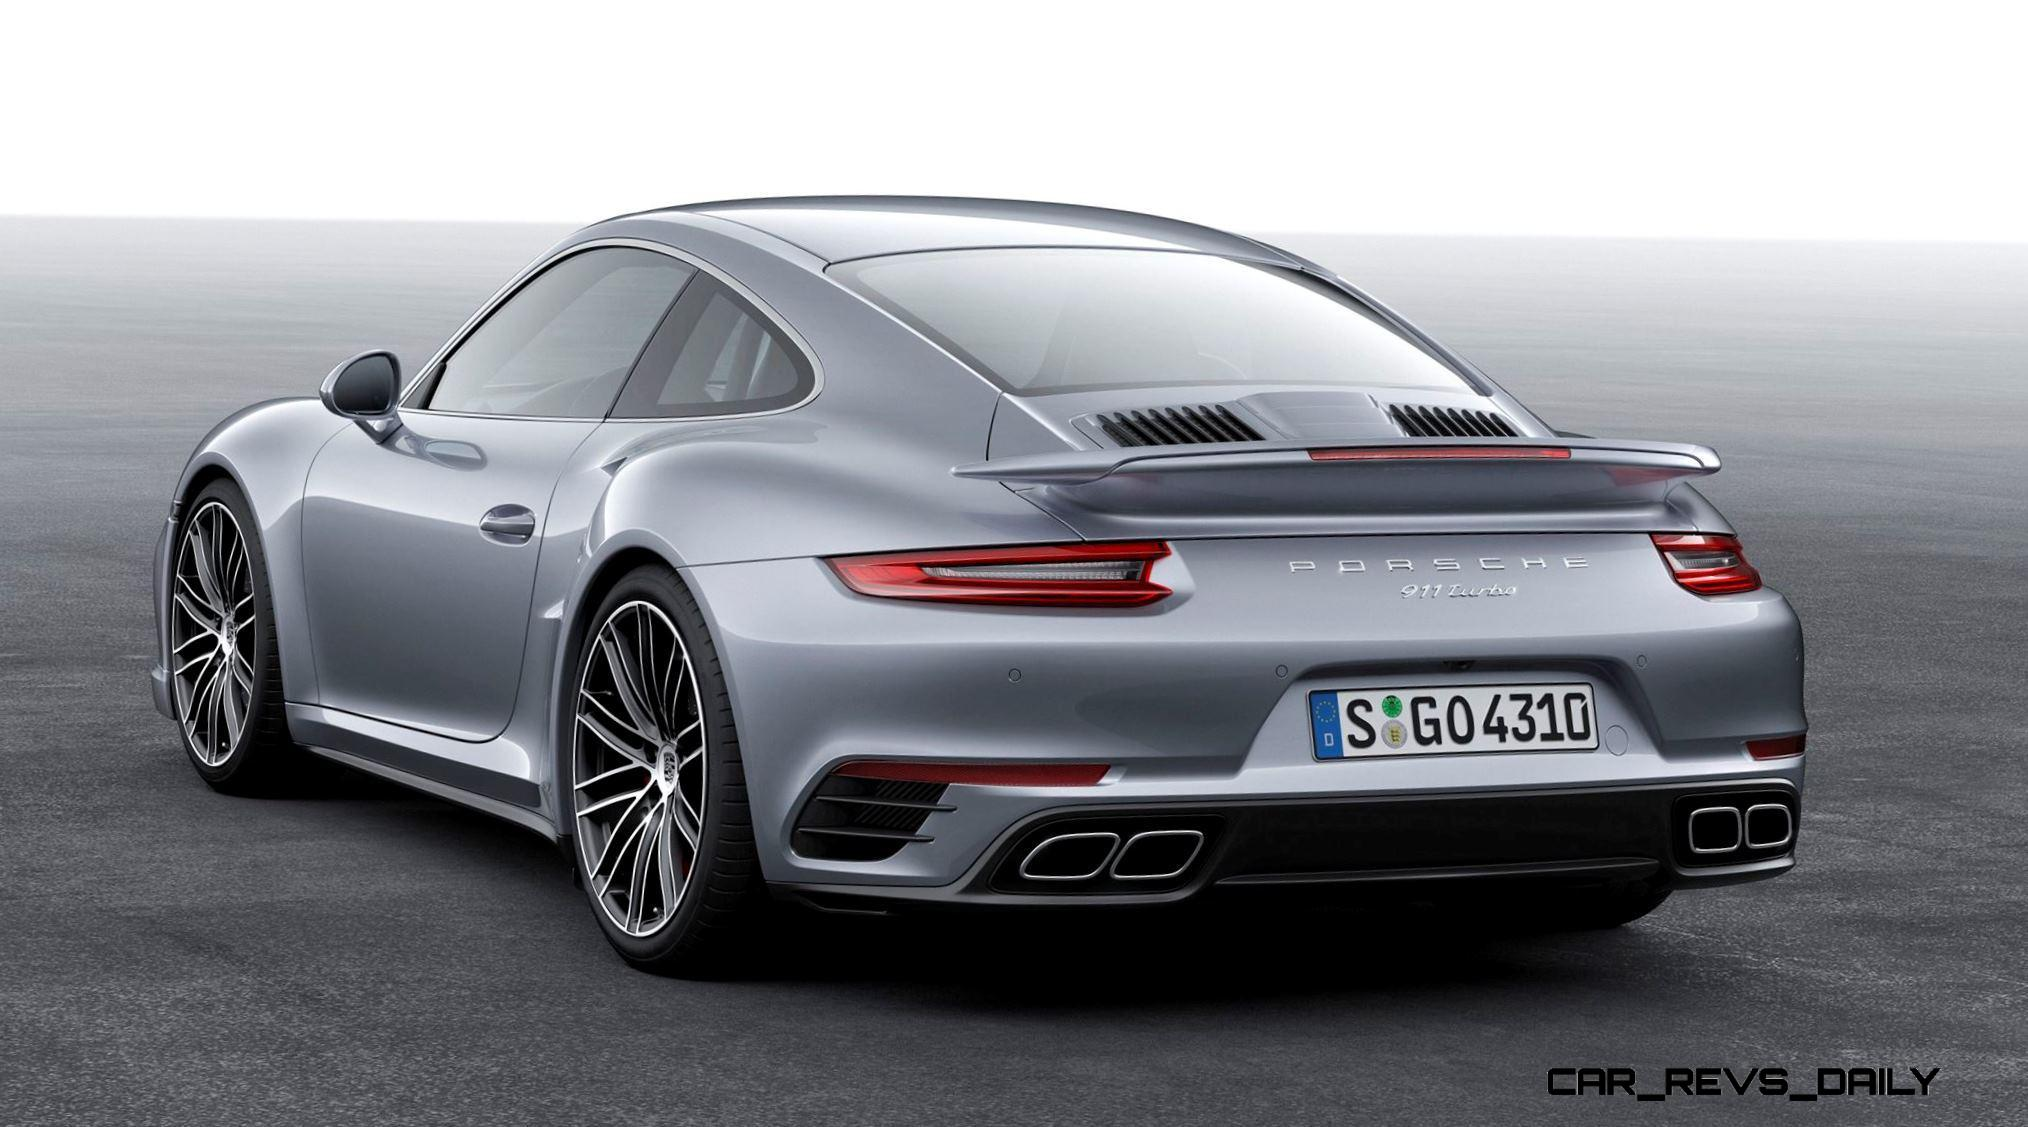 215mph 2017 porsche 911 turbo s revealed new anti. Black Bedroom Furniture Sets. Home Design Ideas